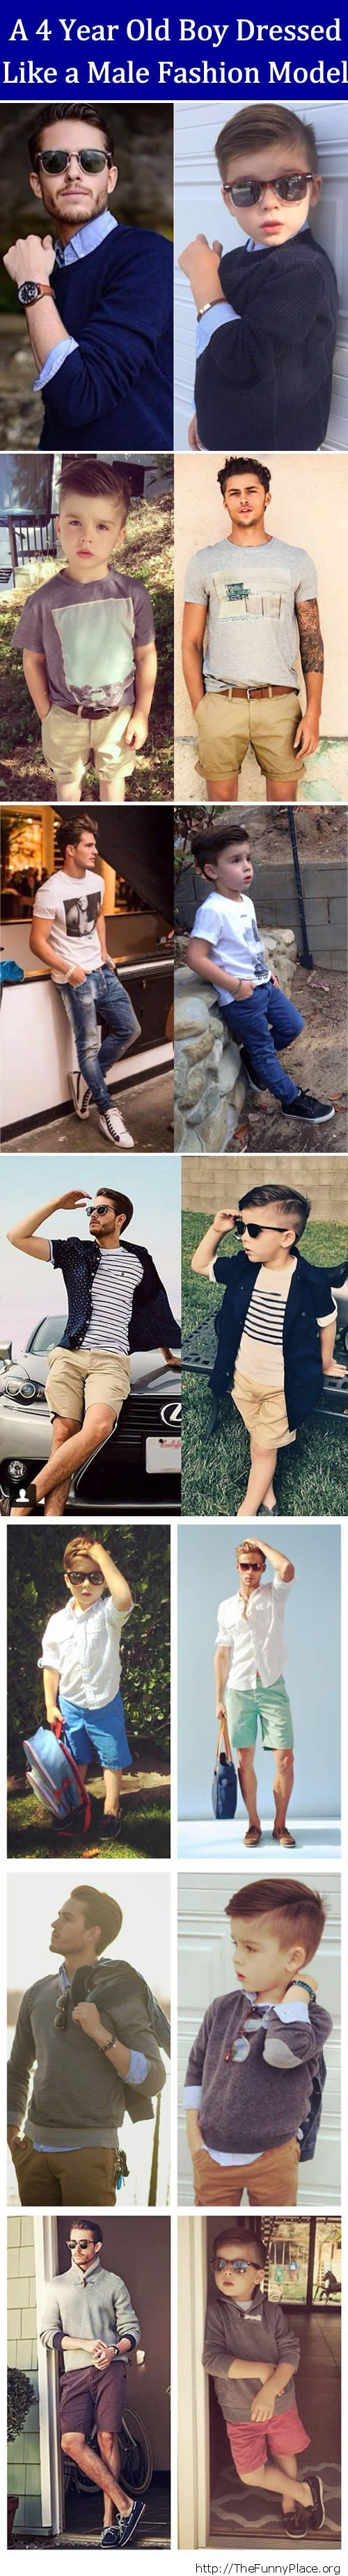 4 year old boy dressed like a male fashion model